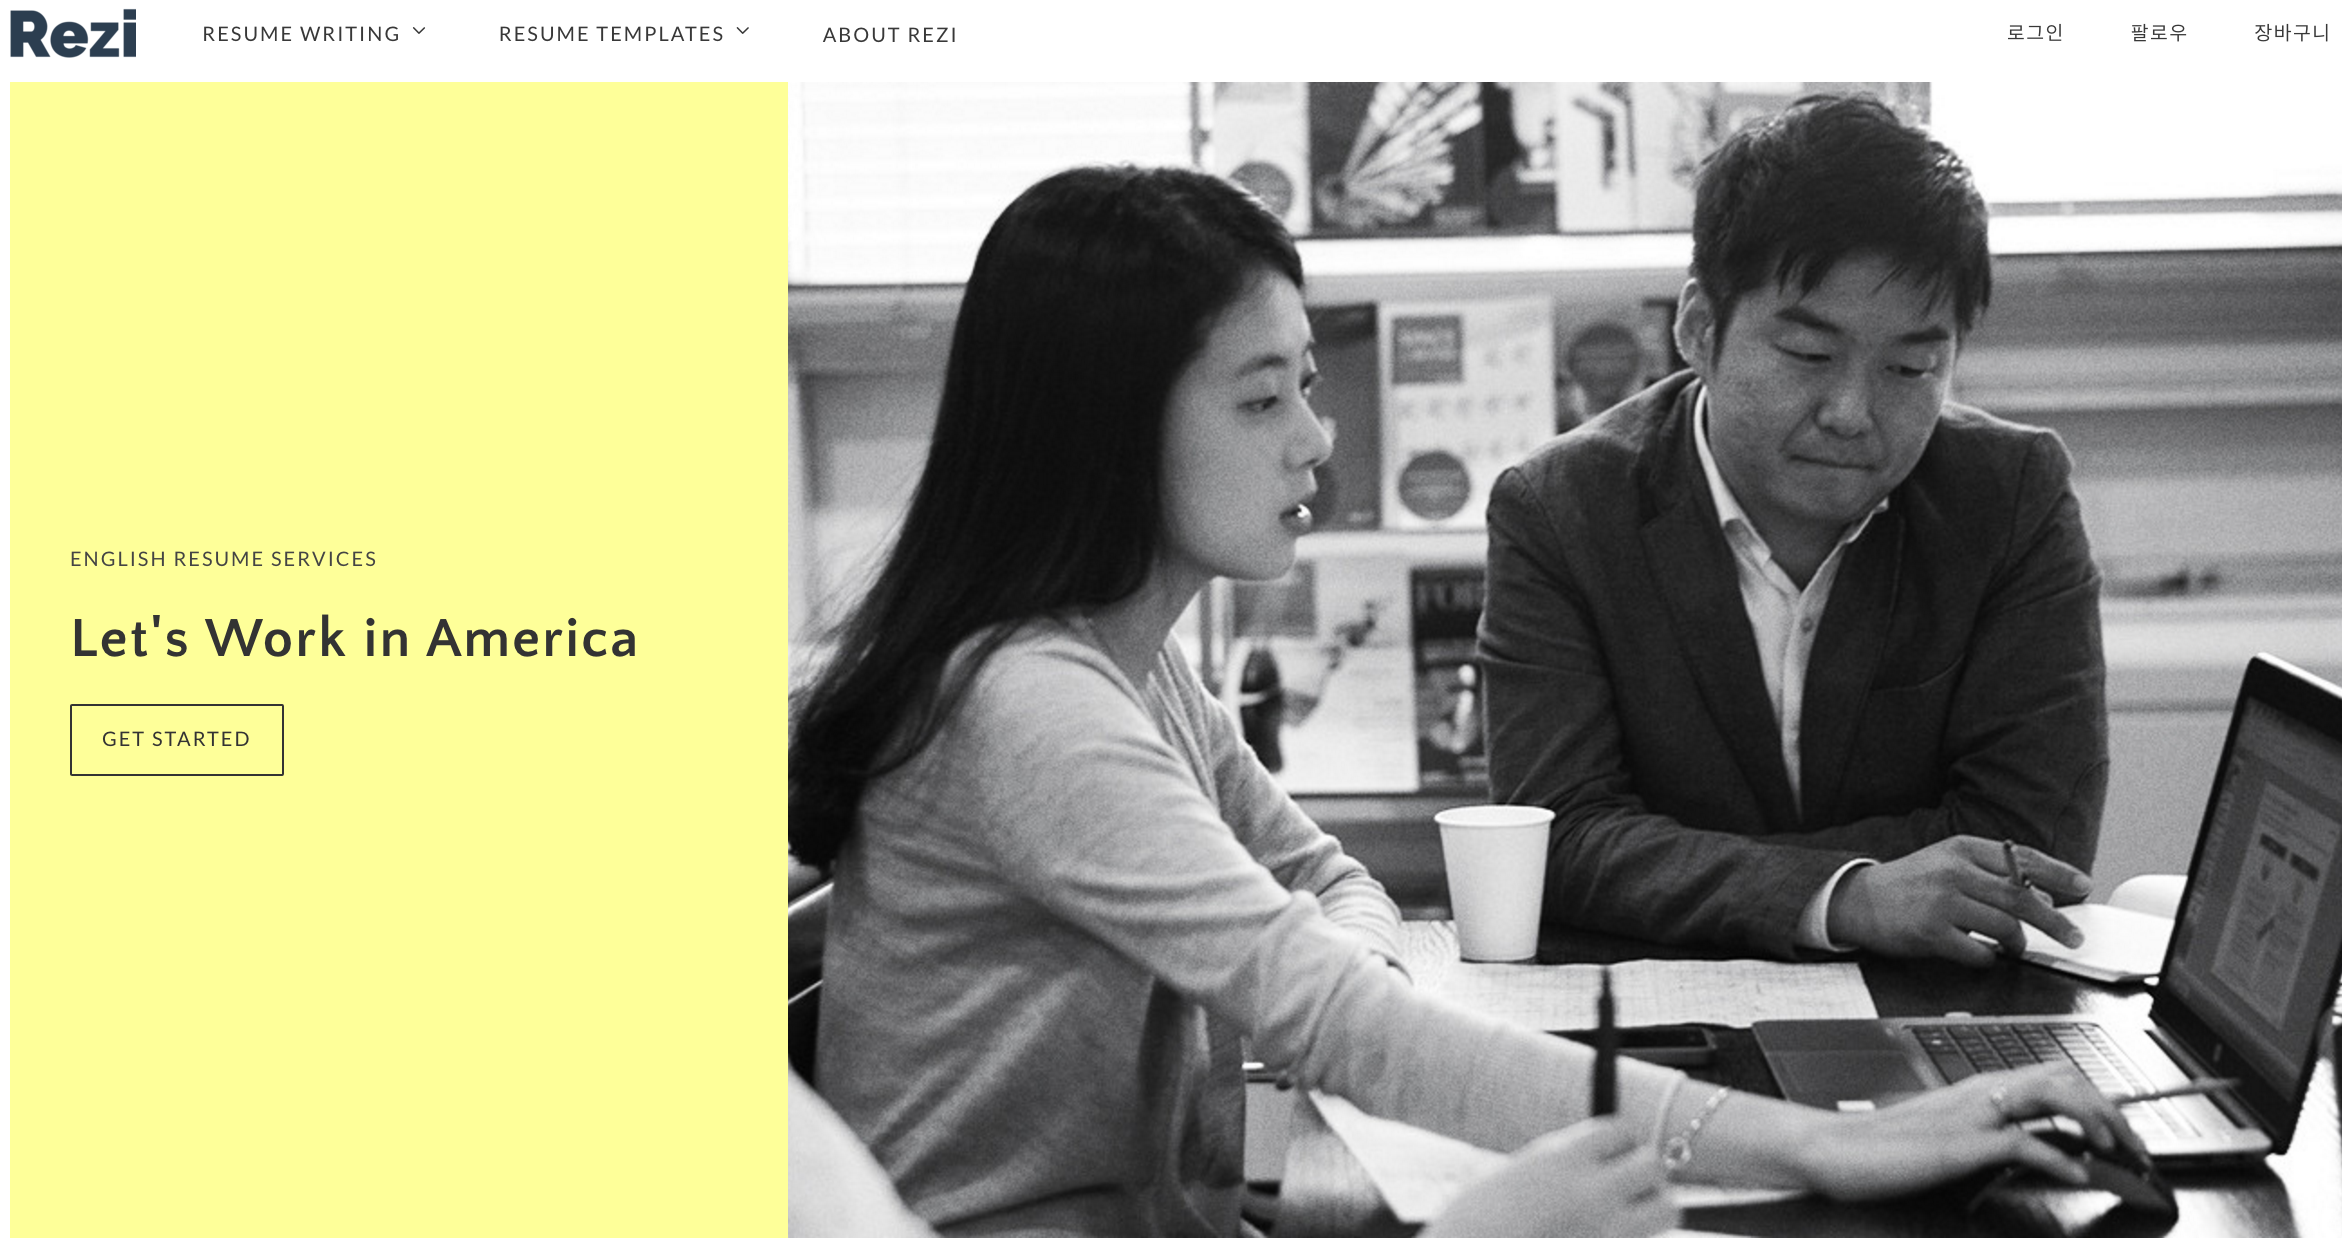 Building On The Successes In America, Rezi.kr Is Excited To Solve The  Challenges Korean Job Seekers Face With English Resume Writing And Templates